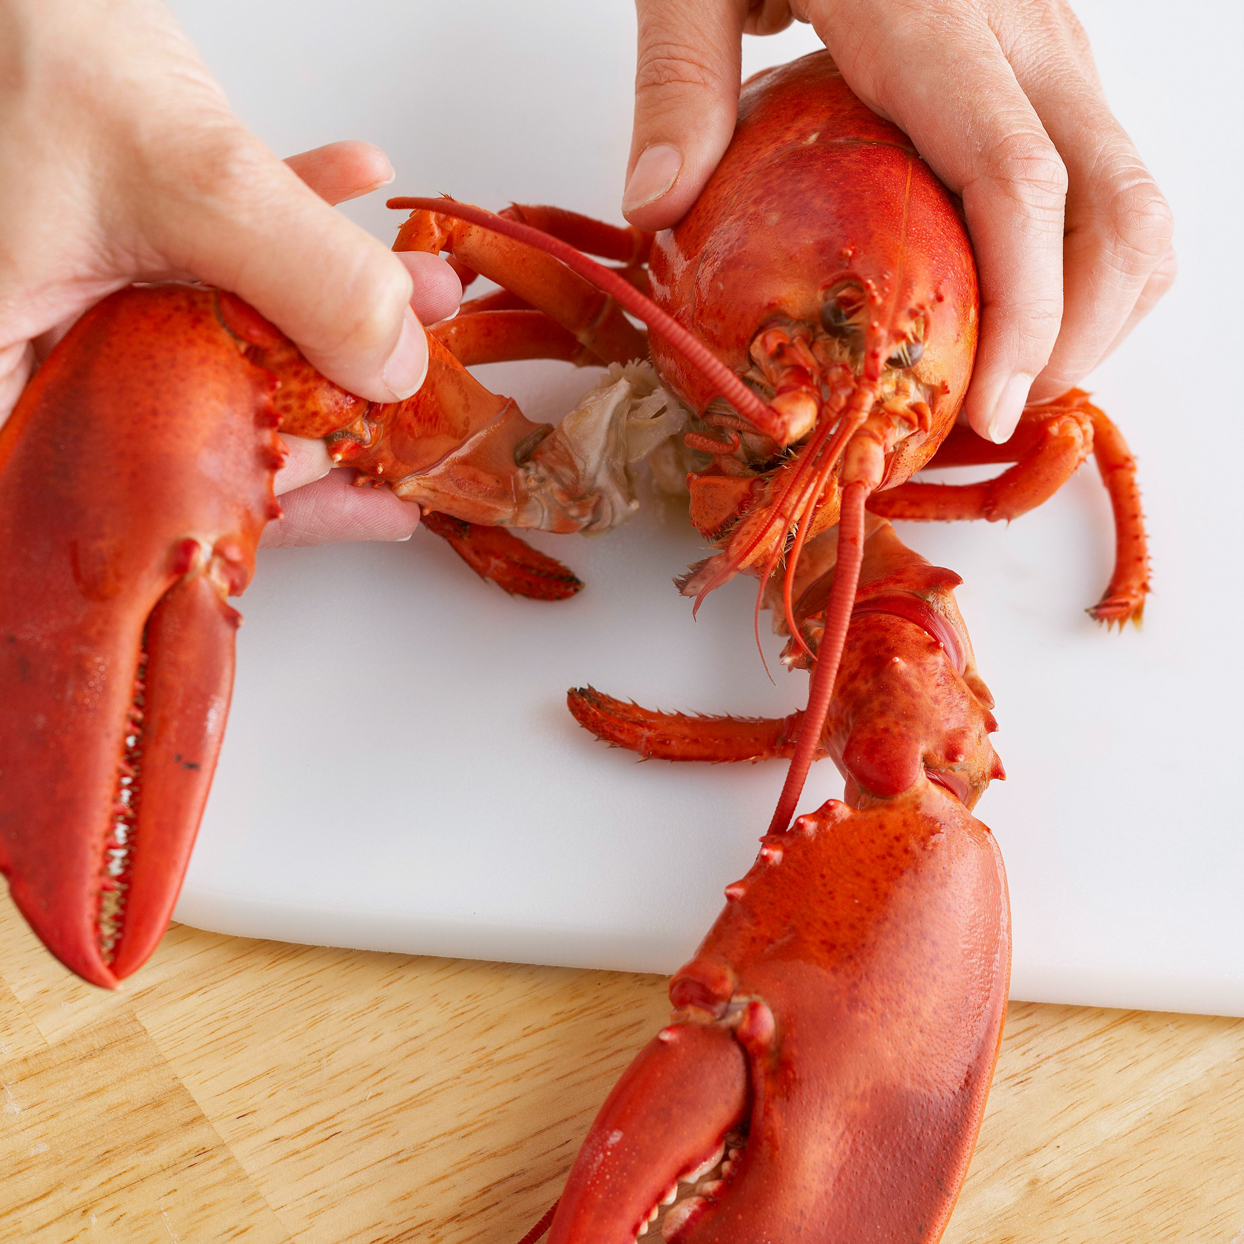 removing lobster claw